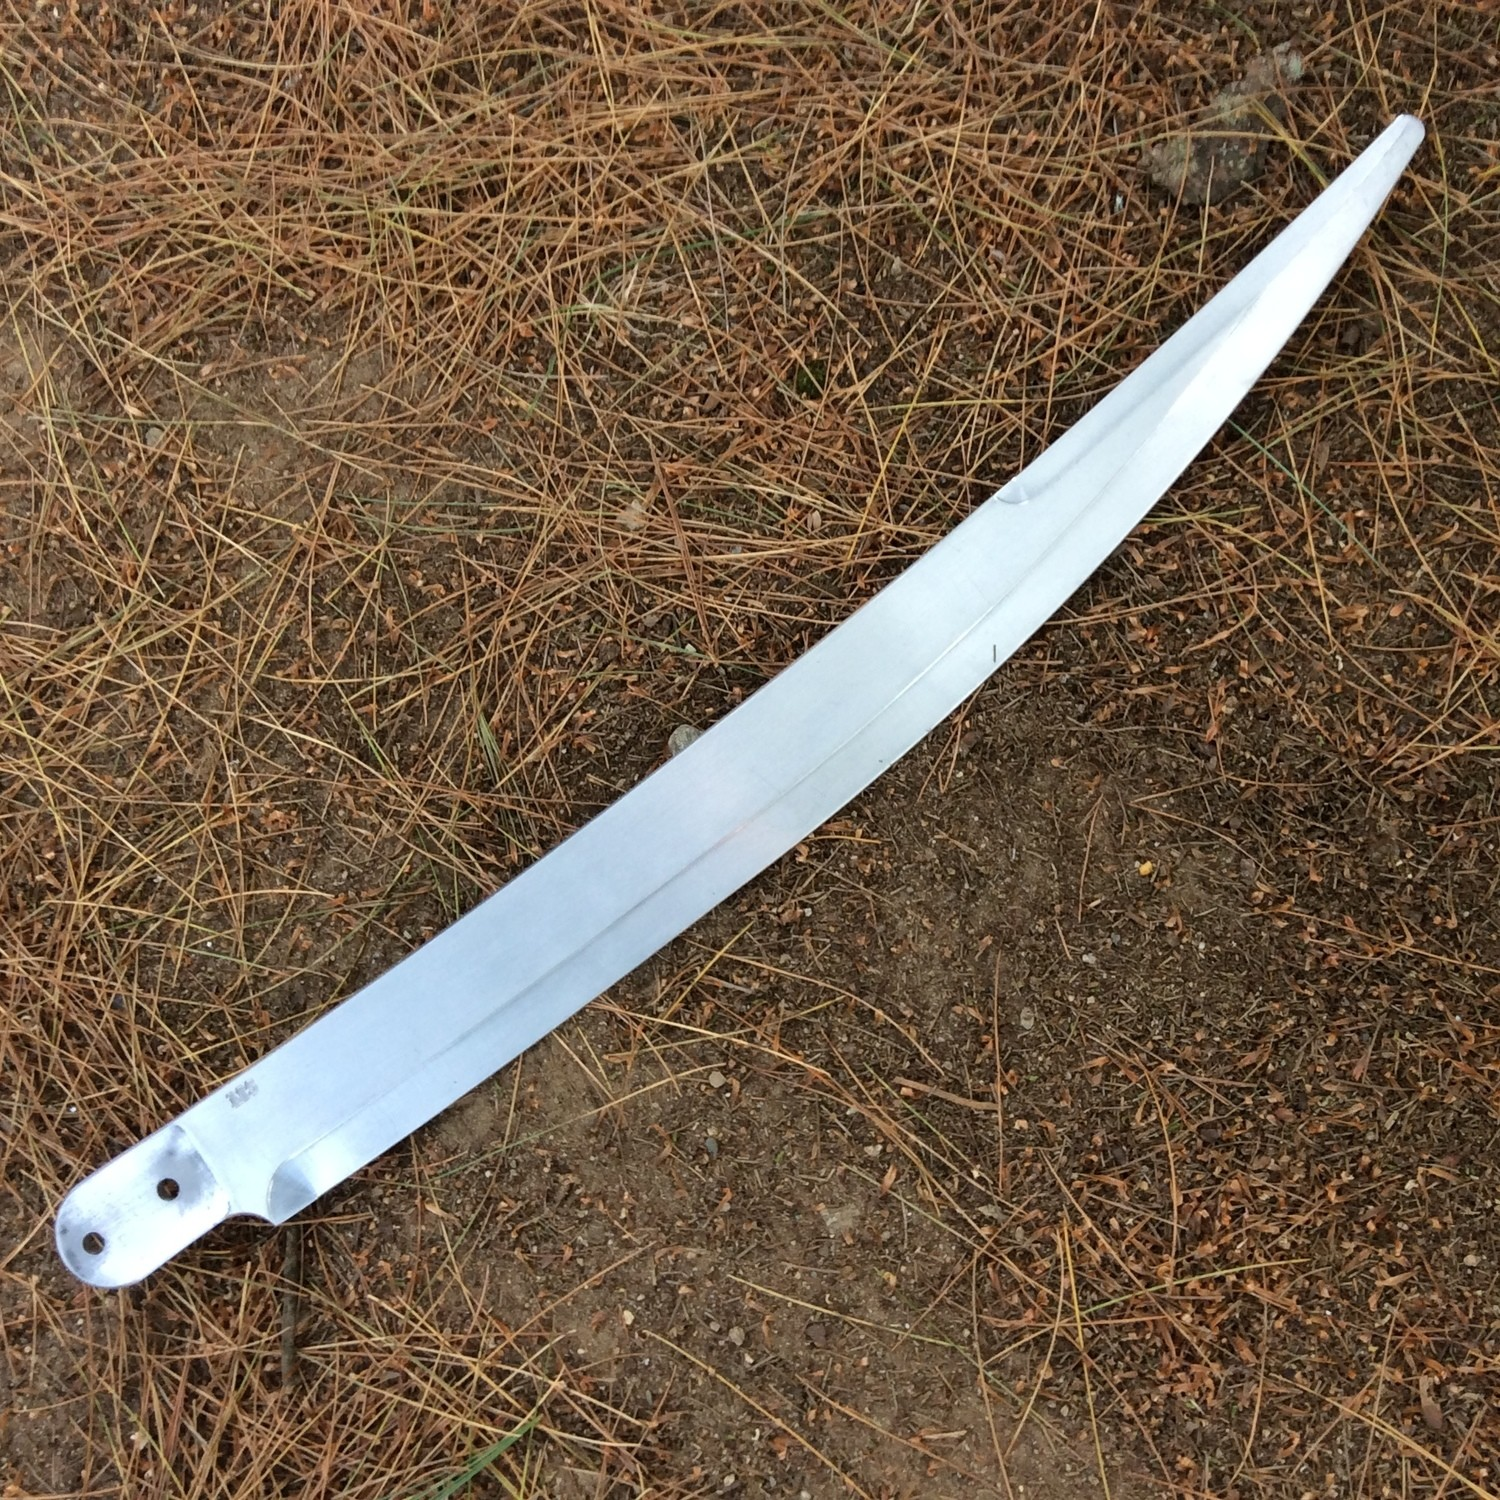 M5 - Saber Blade only for Change-A-Blade